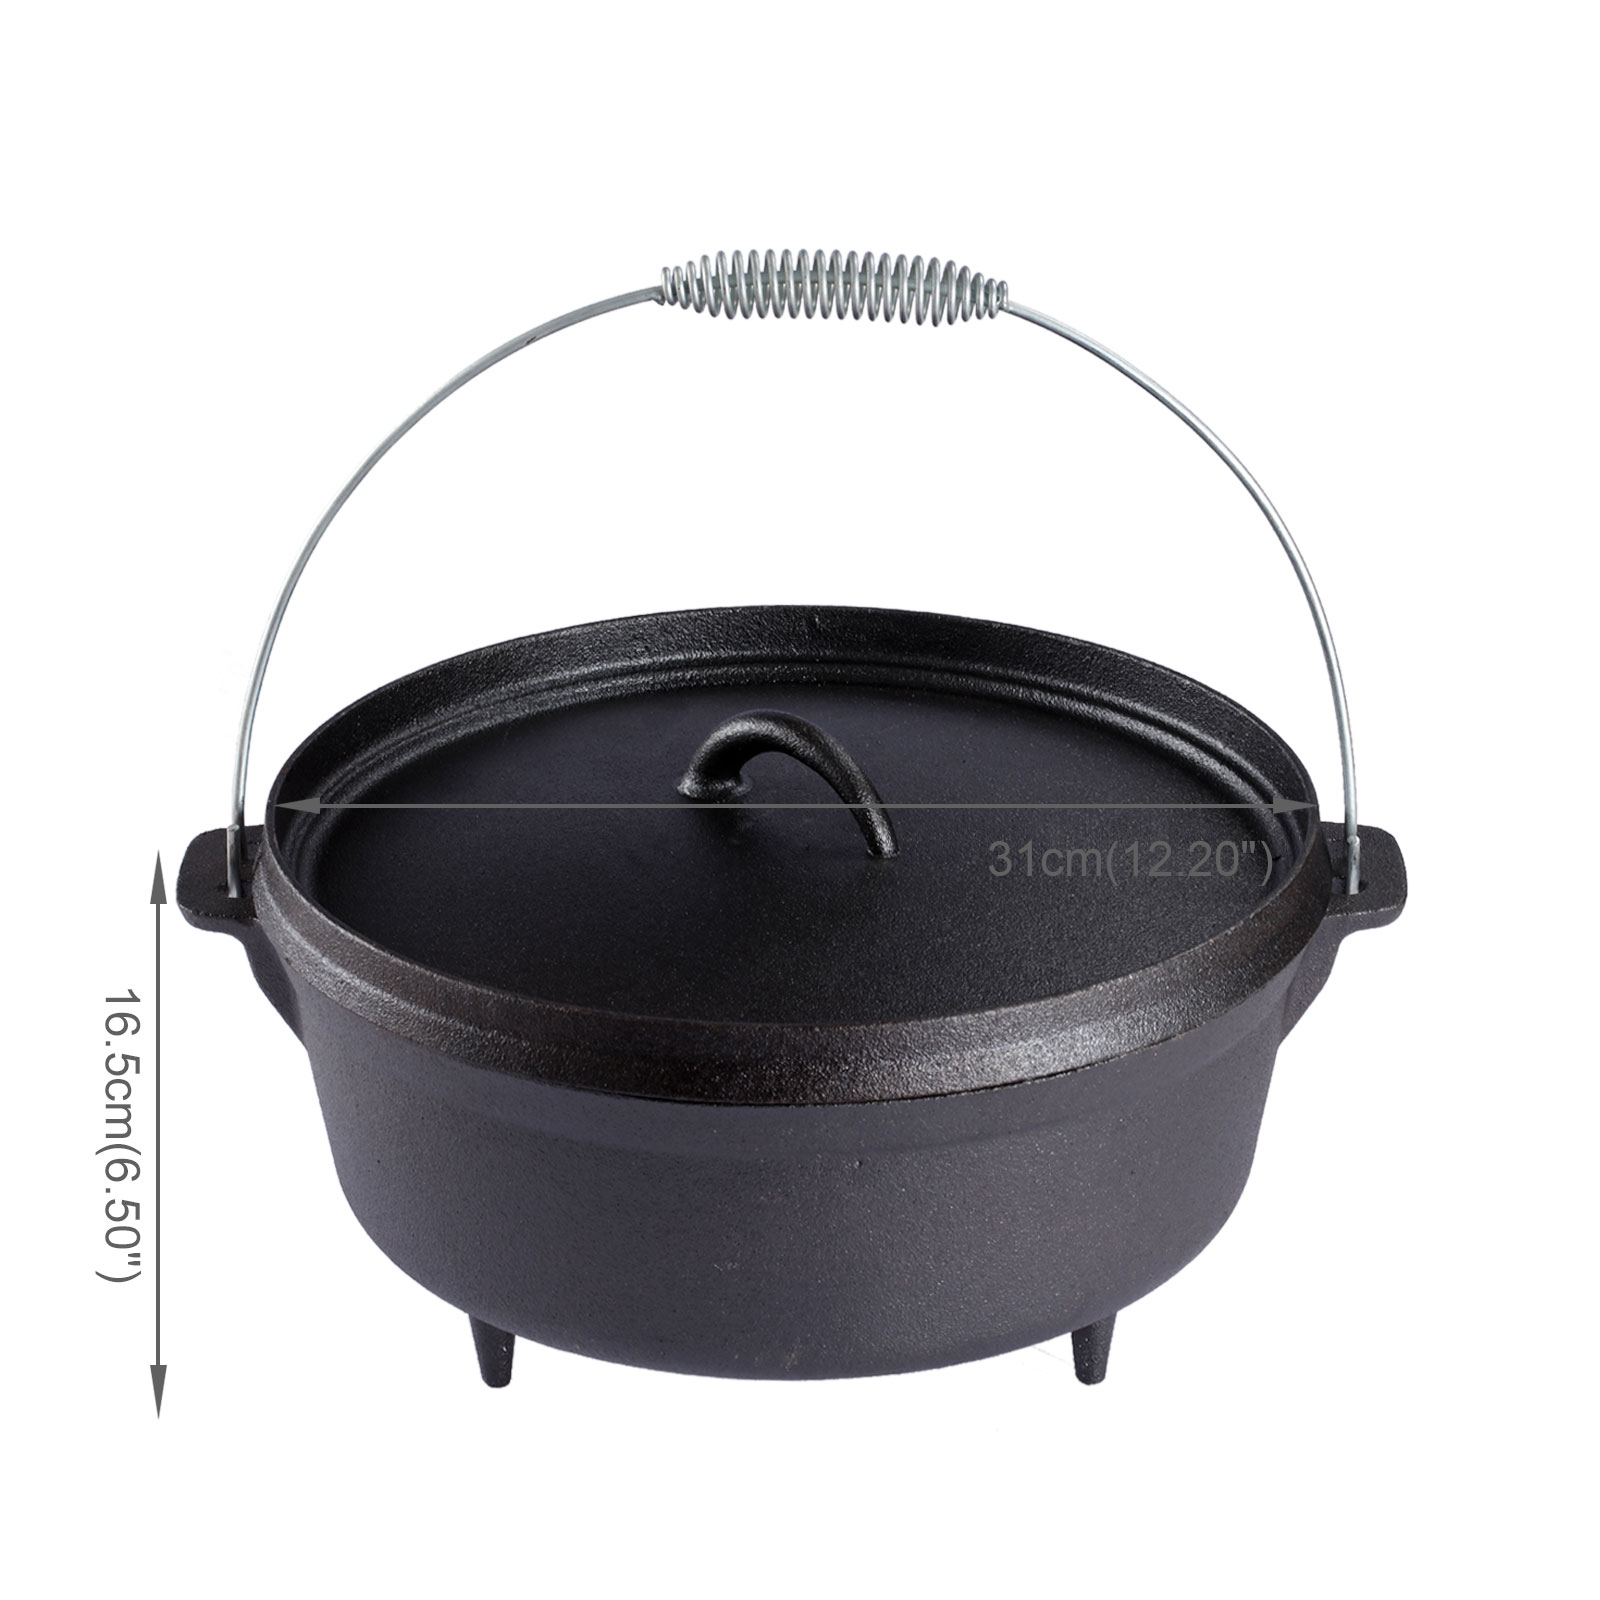 6 quart cast iron dutch oven pot outdoor campfire hanging for Healthy dutch oven camping recipes